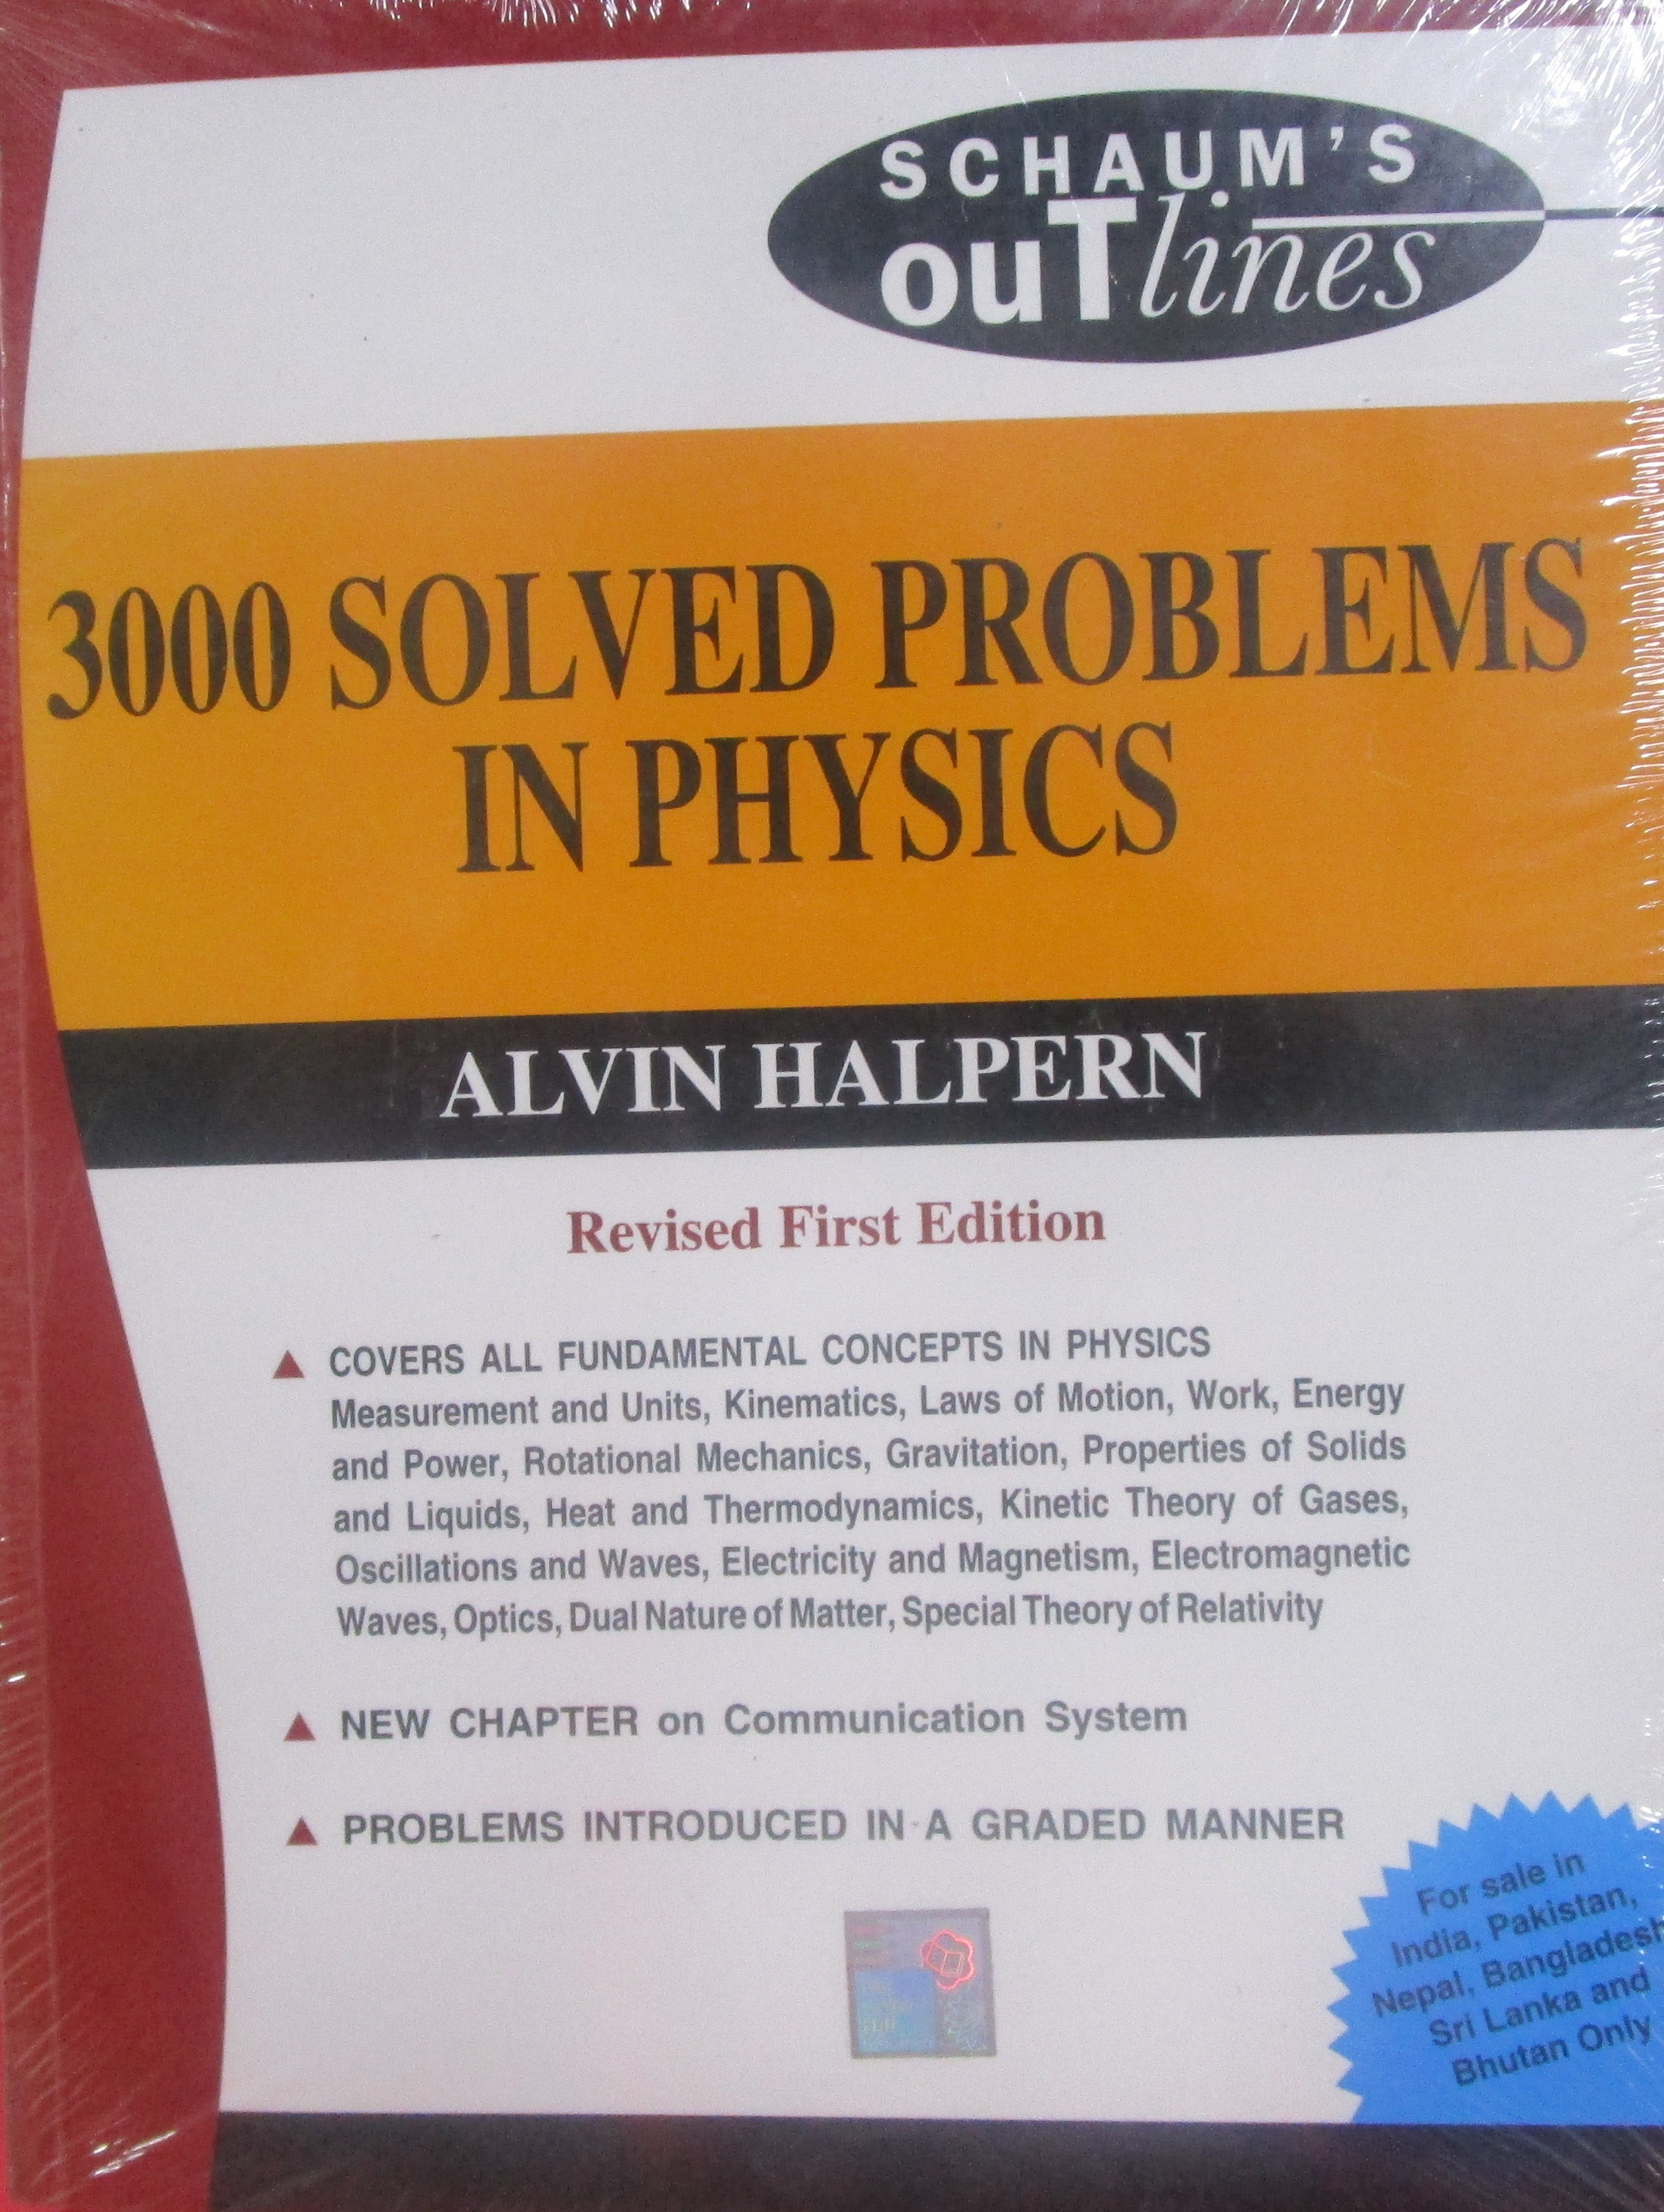 schaum 3000 solved problems in physics pdf also an error occurred